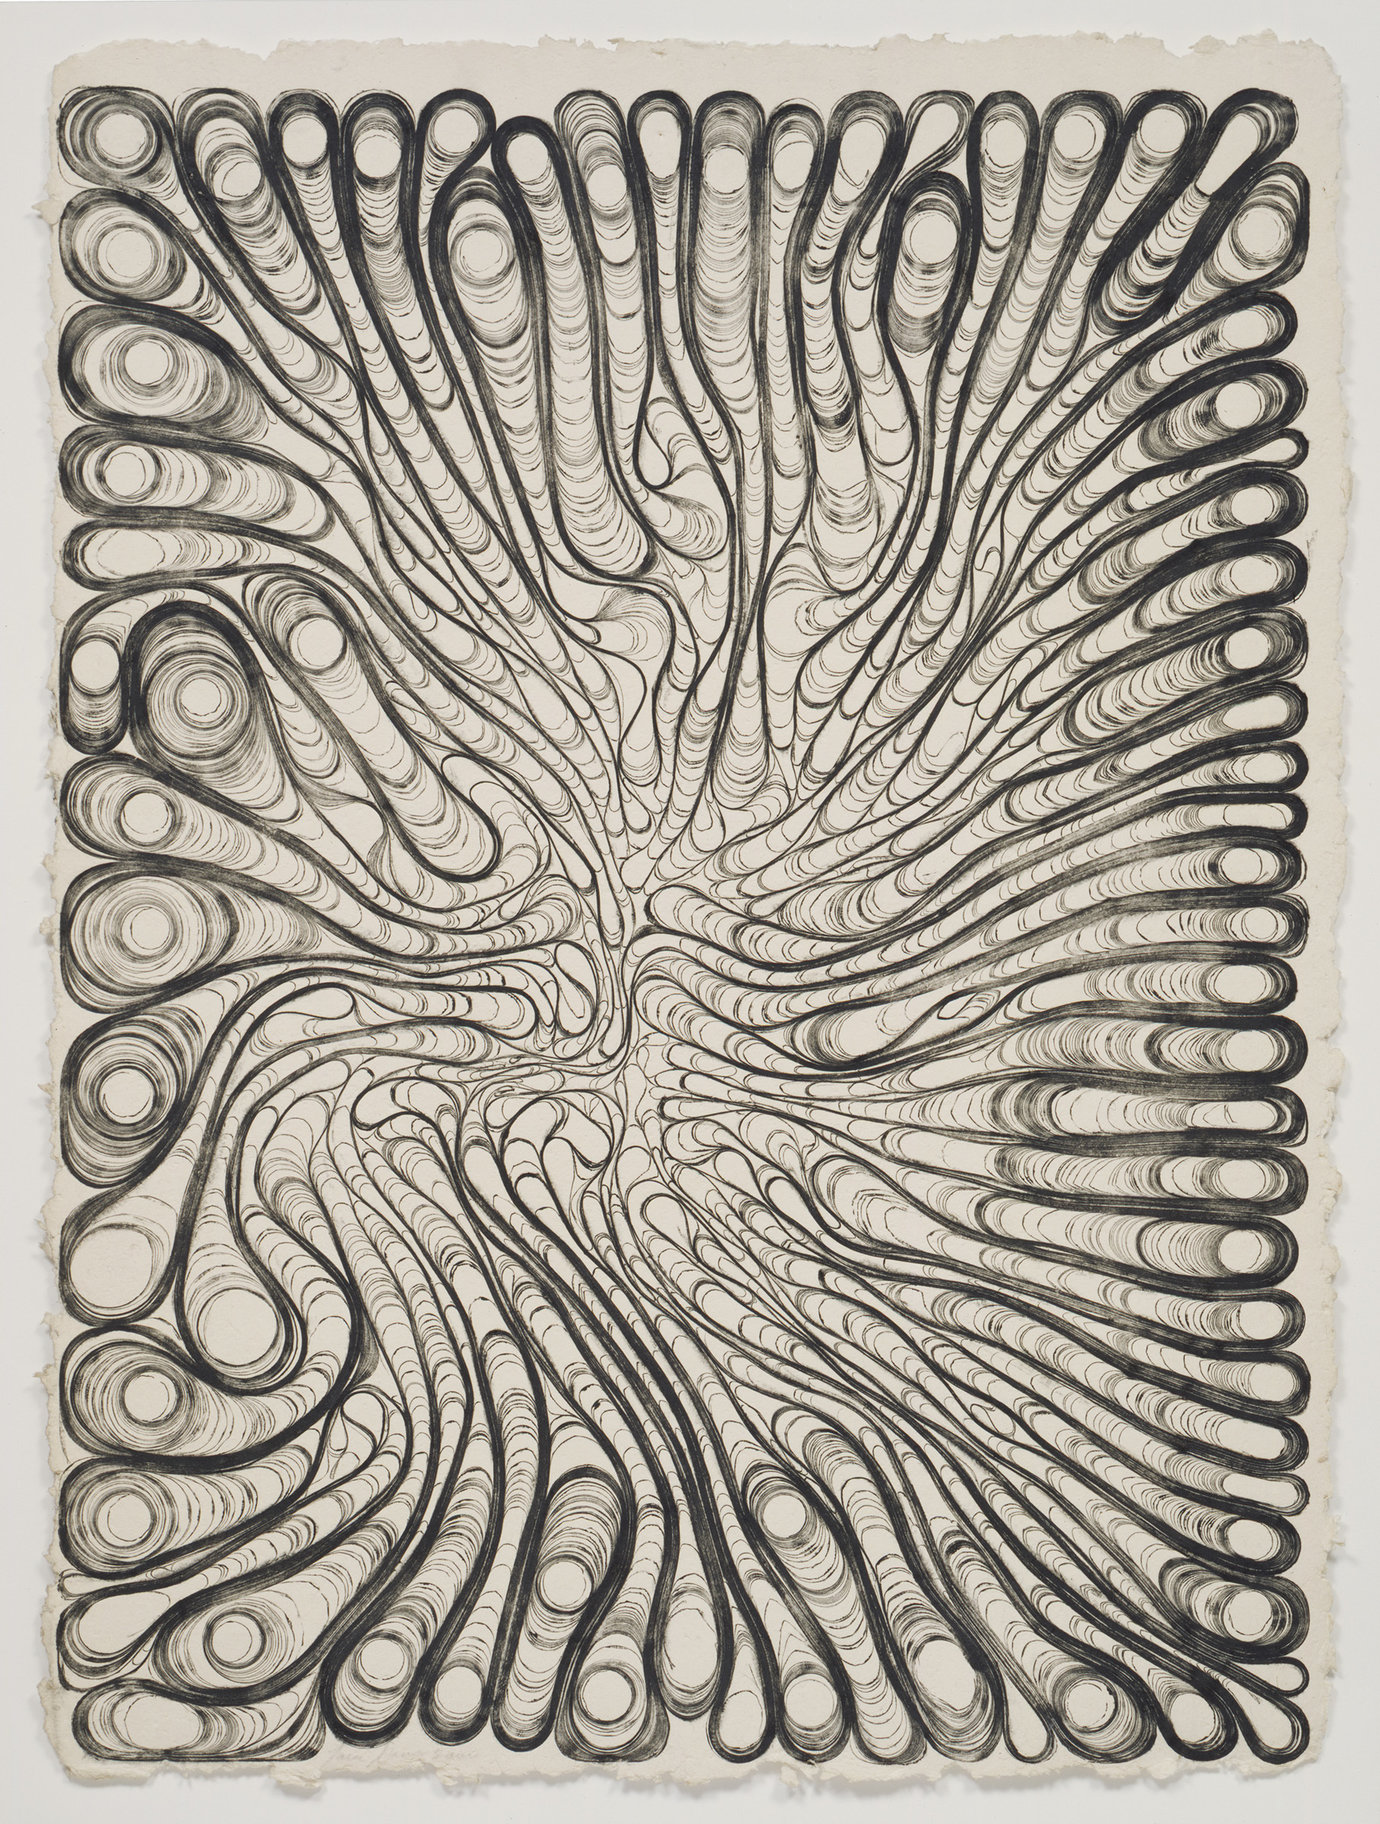 ", 2000. etching ink on Twin Rocker handmade paper, 34-1/2"" x 47"" (87.6 cm x 119.4 cm)."